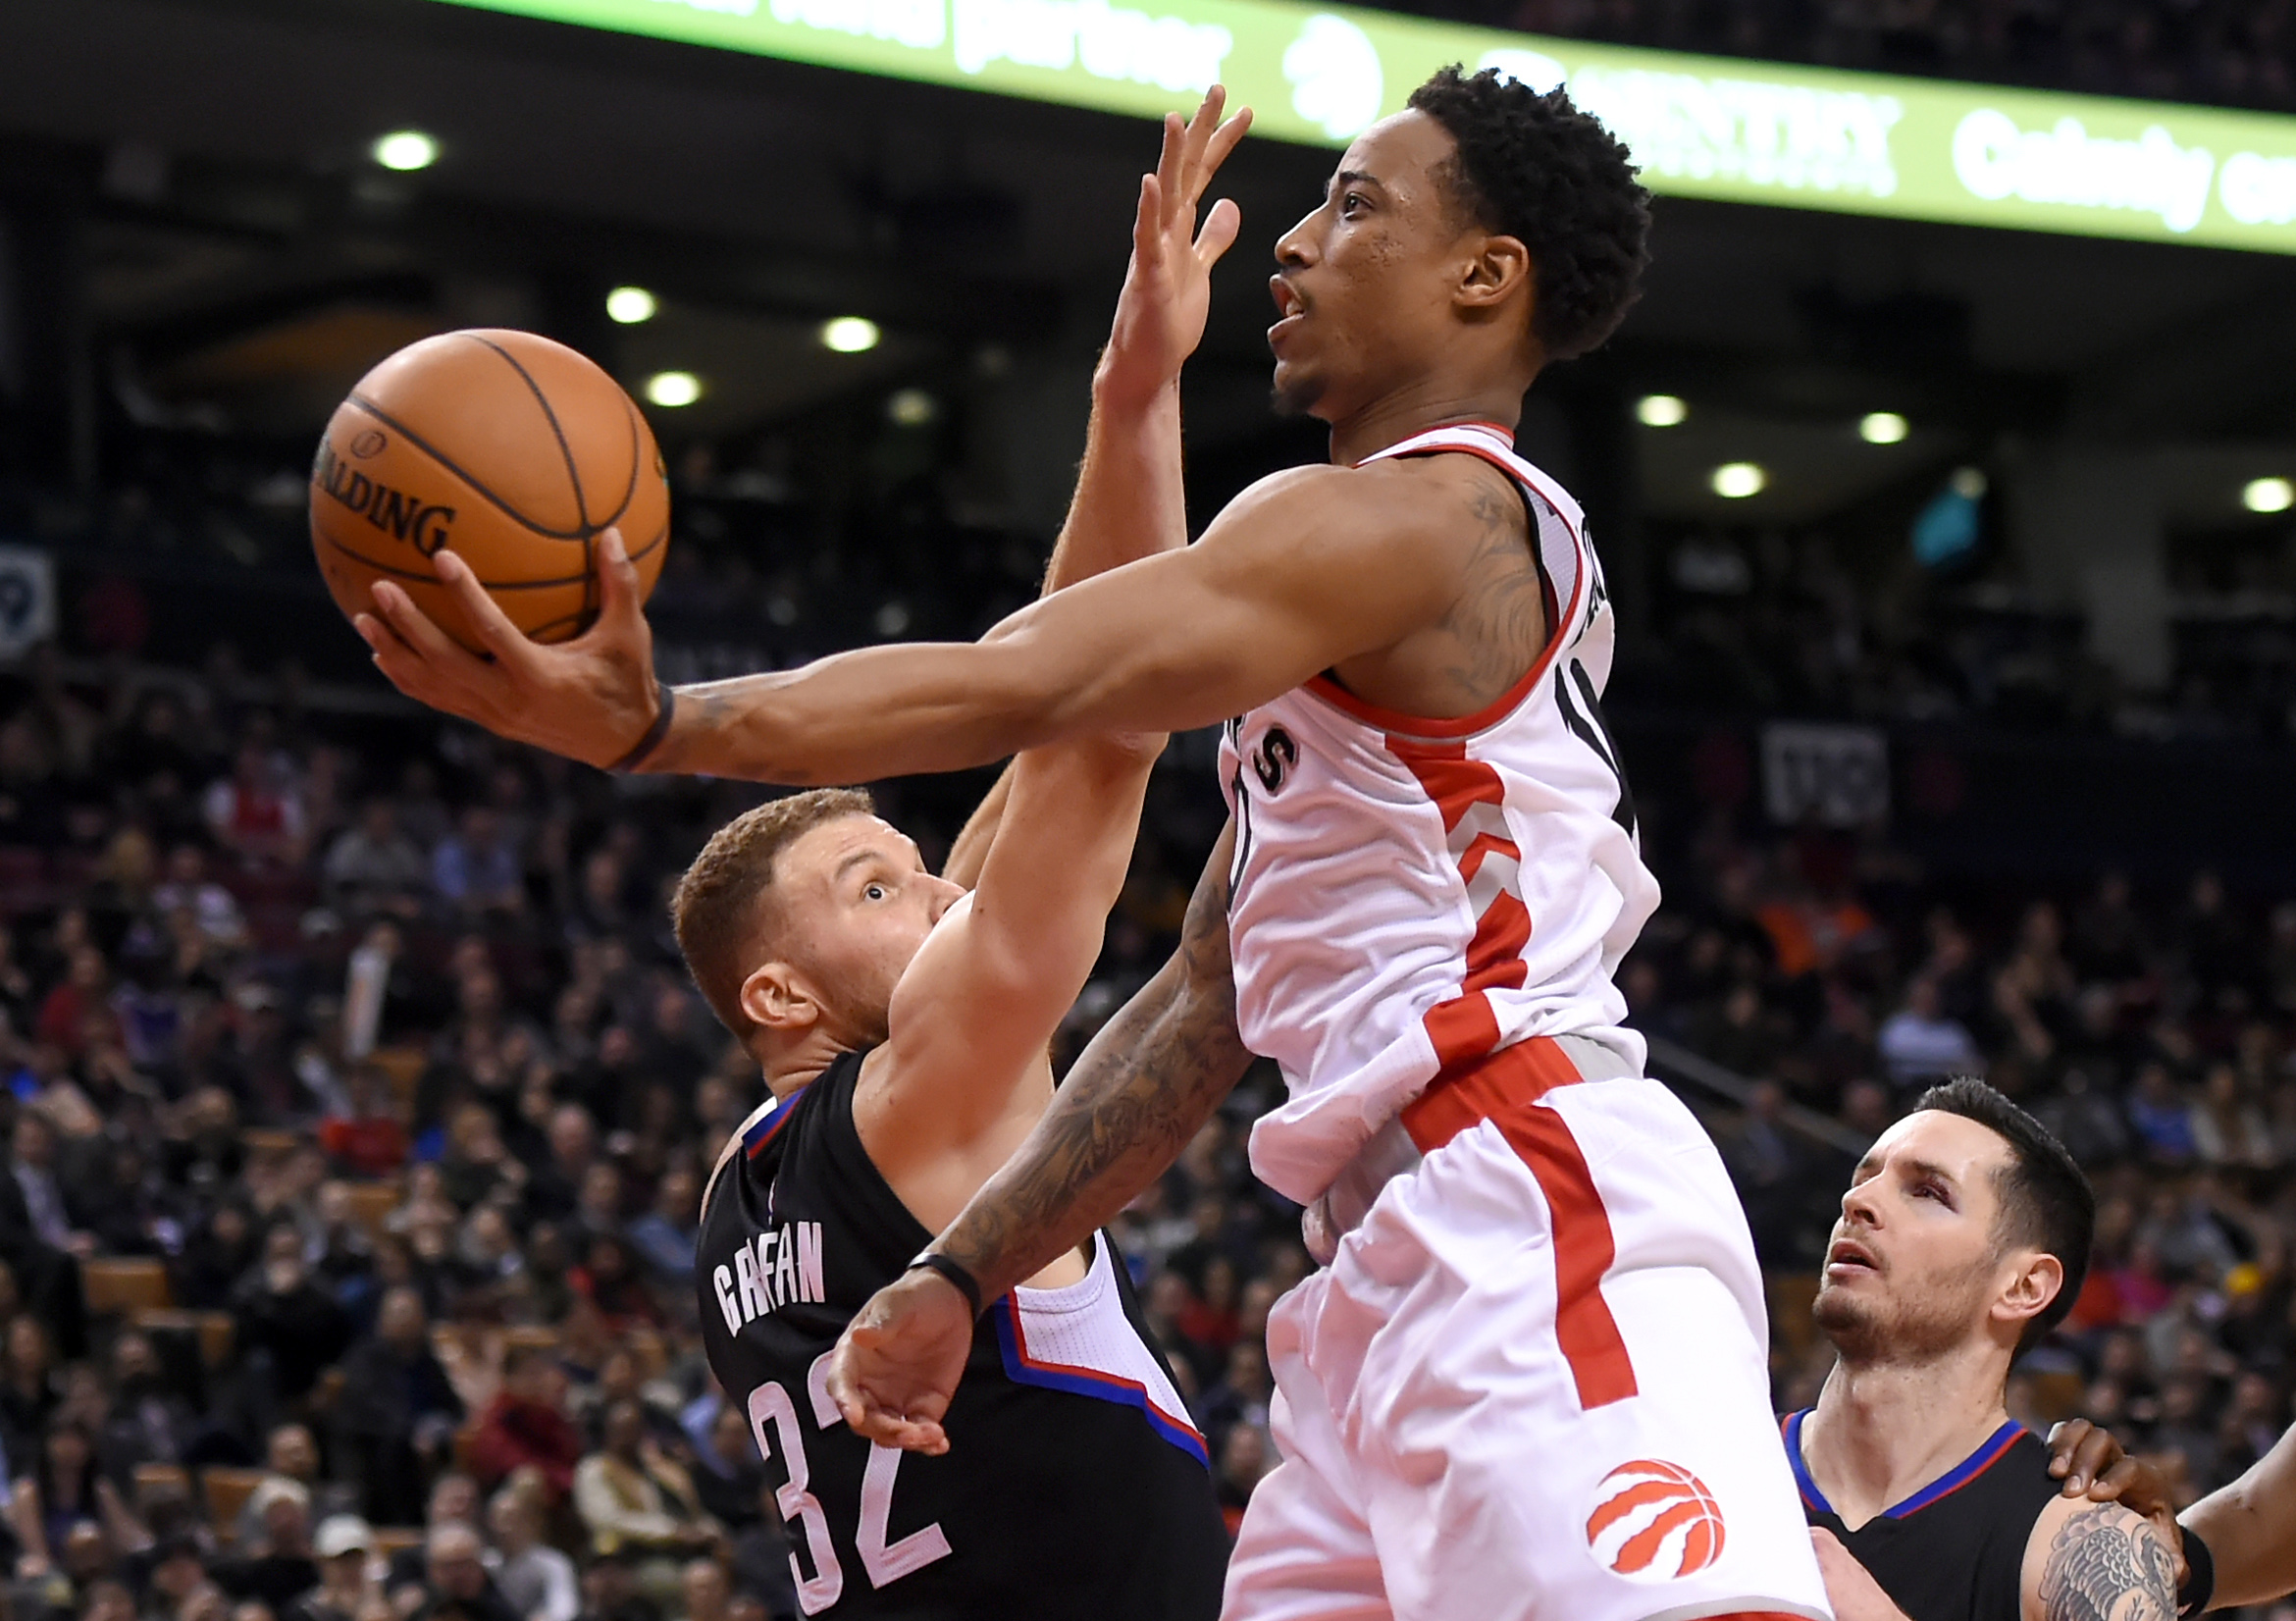 Feb 6, 2017; Toronto, Ontario, CAN; Toronto Raptors guard DeMar DeRozan (10) shoots the ball past Los Angeles Clippers forward Blake Griffin (32) in the fourth quarter at Air Canada Centre. Mandatory Credit: Dan Hamilton-USA TODAY Sports